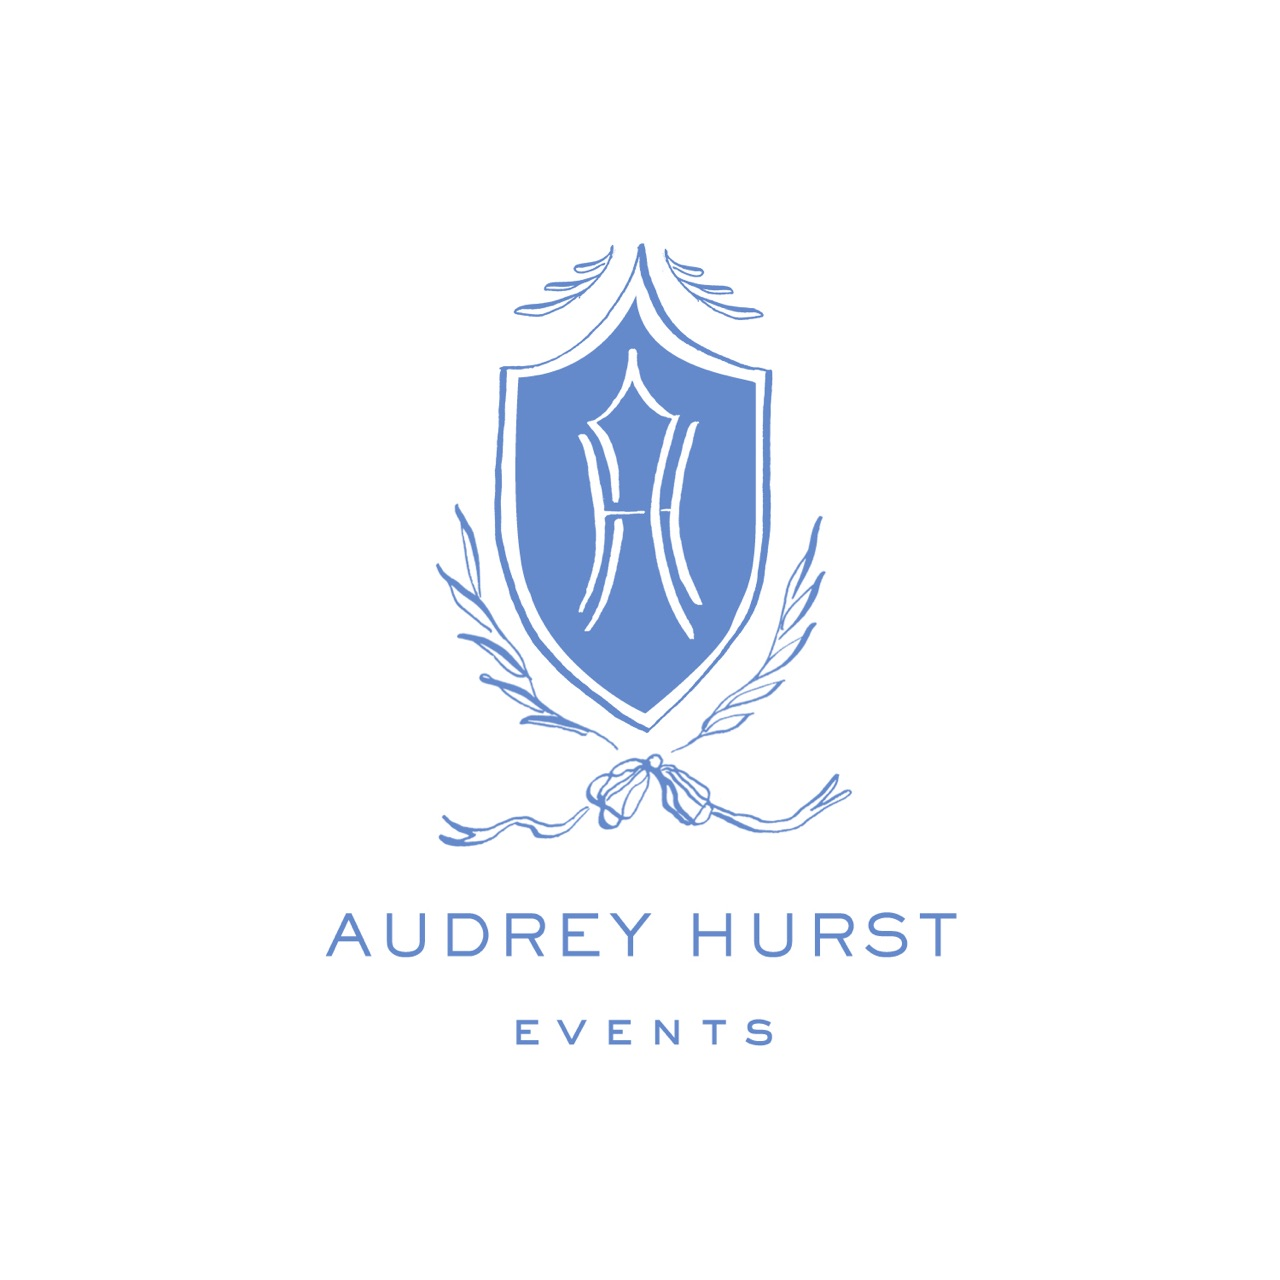 Audrey Hurst Weddings